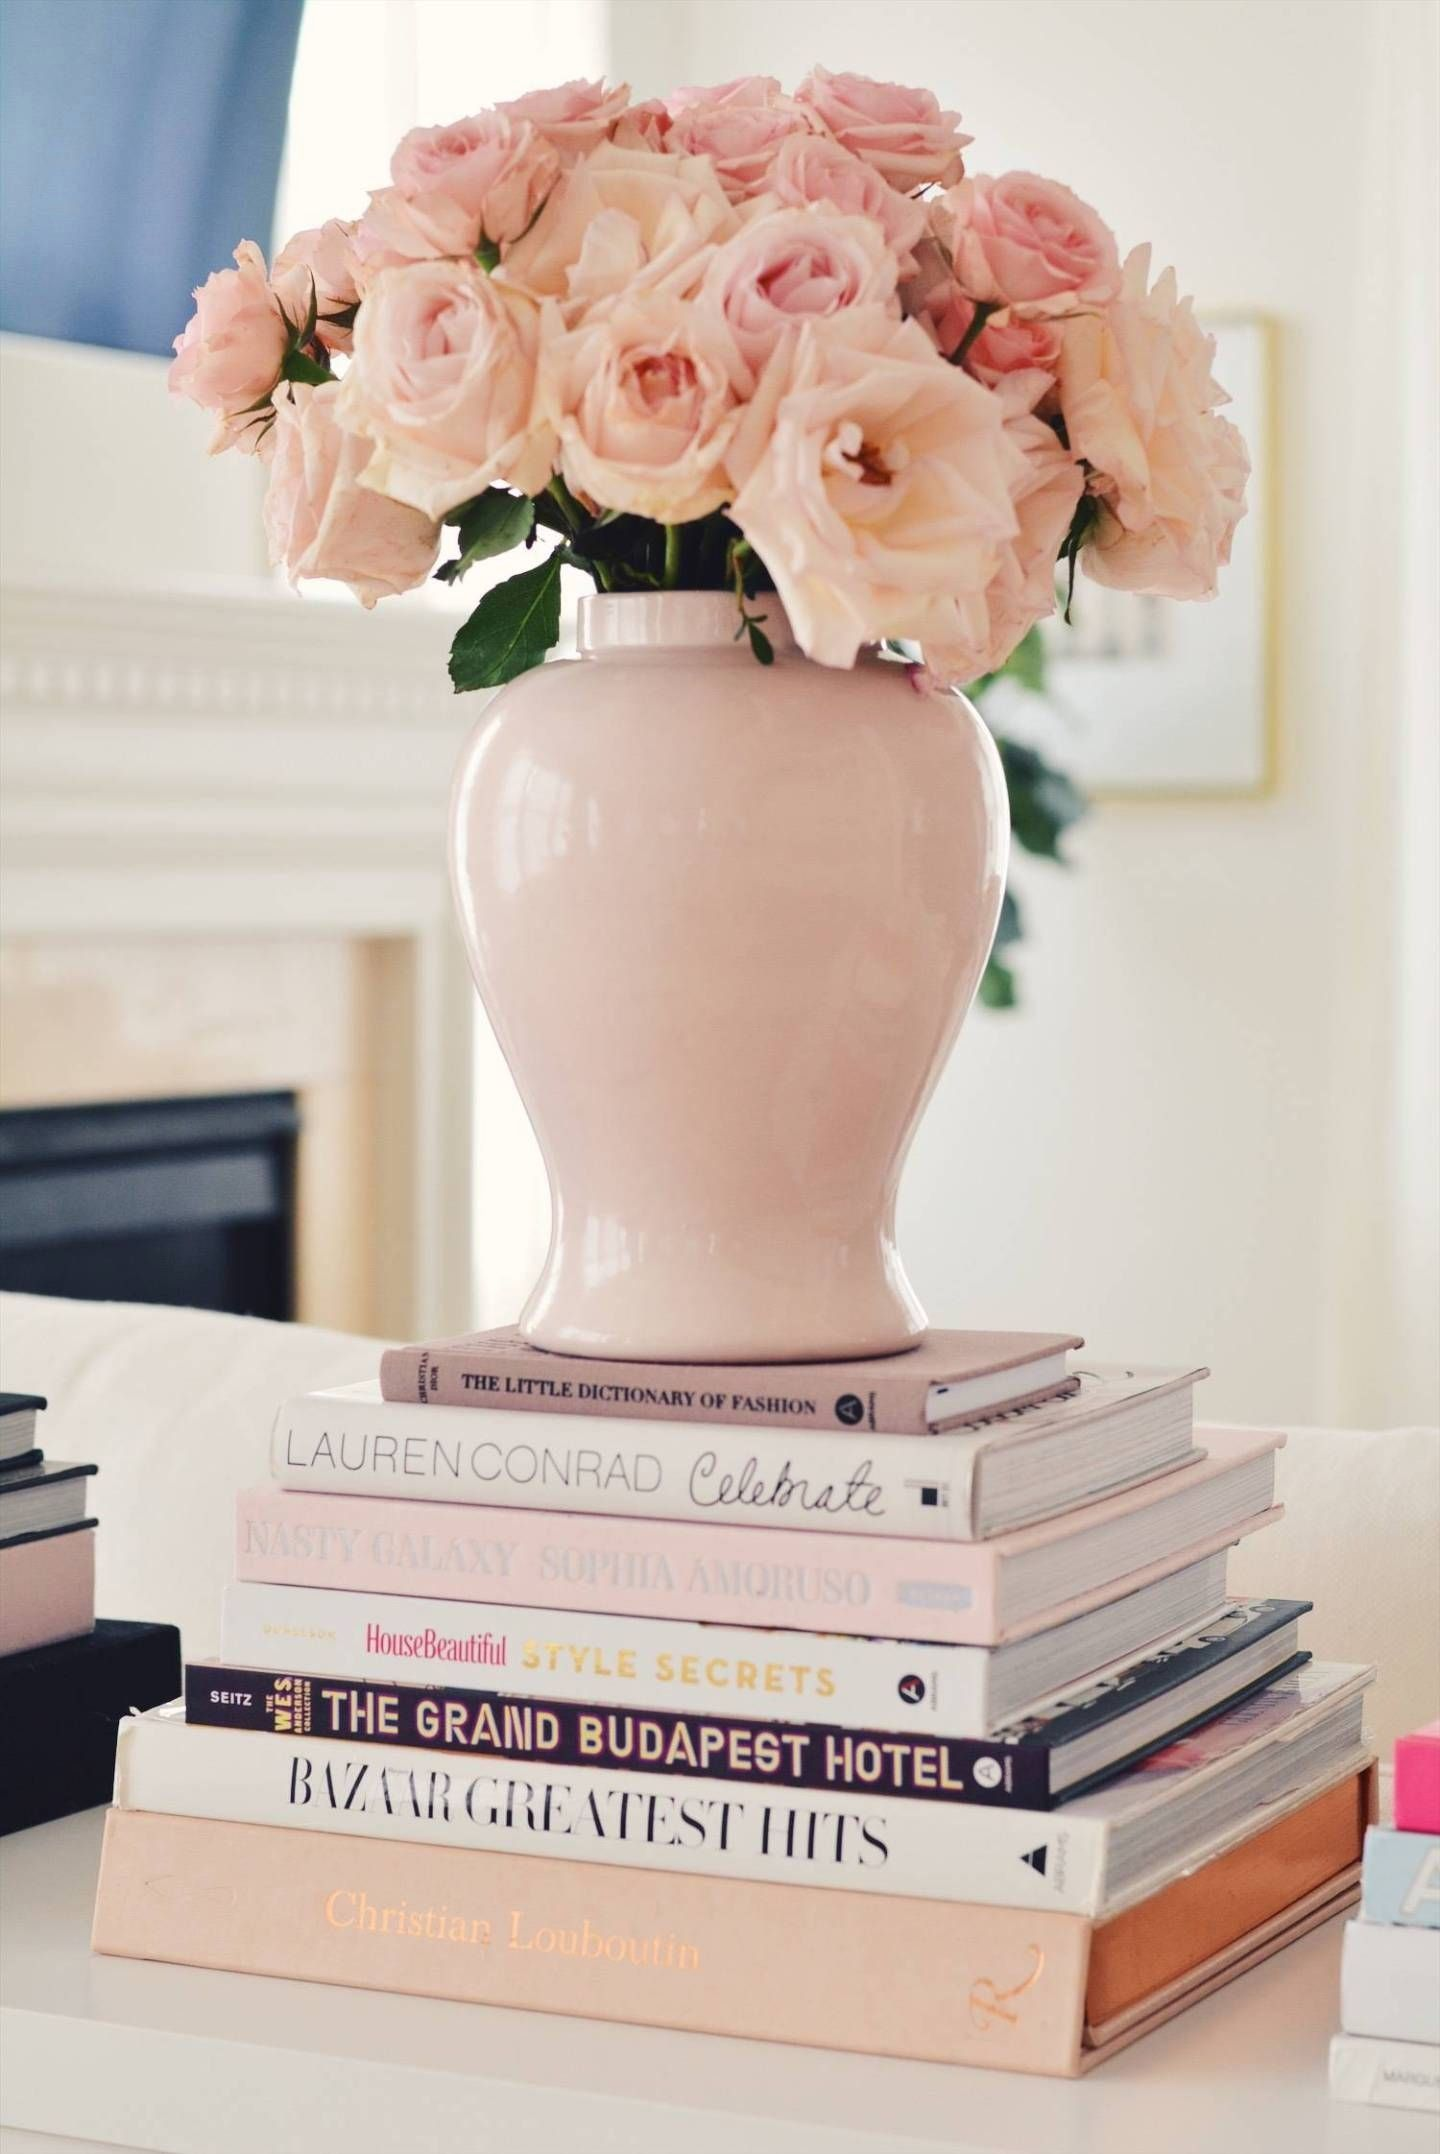 Coffee Table Books Round Up The Pink Dream 1000 In 2020 Coffee Table Books Decor Best Coffee Table Books Decorating Coffee Tables